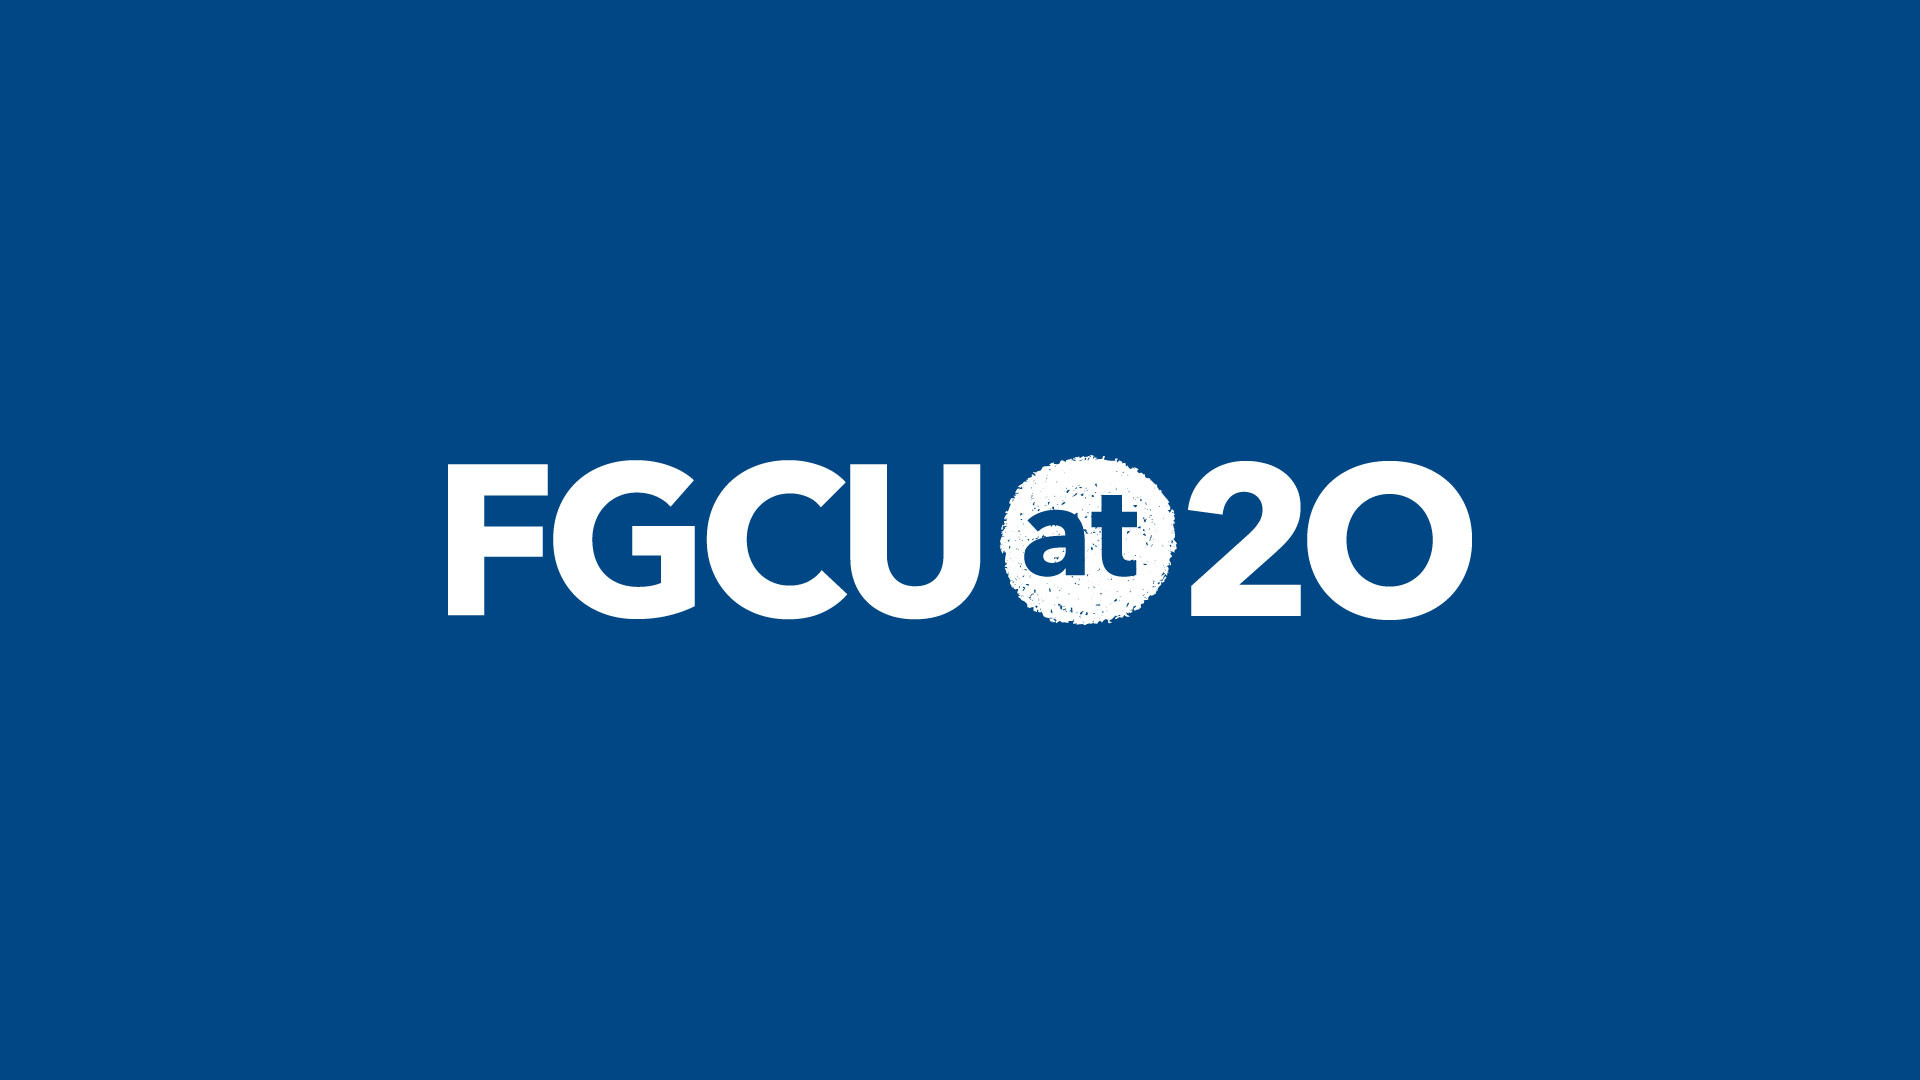 1920x1080 FGCU at 20 Logo Background